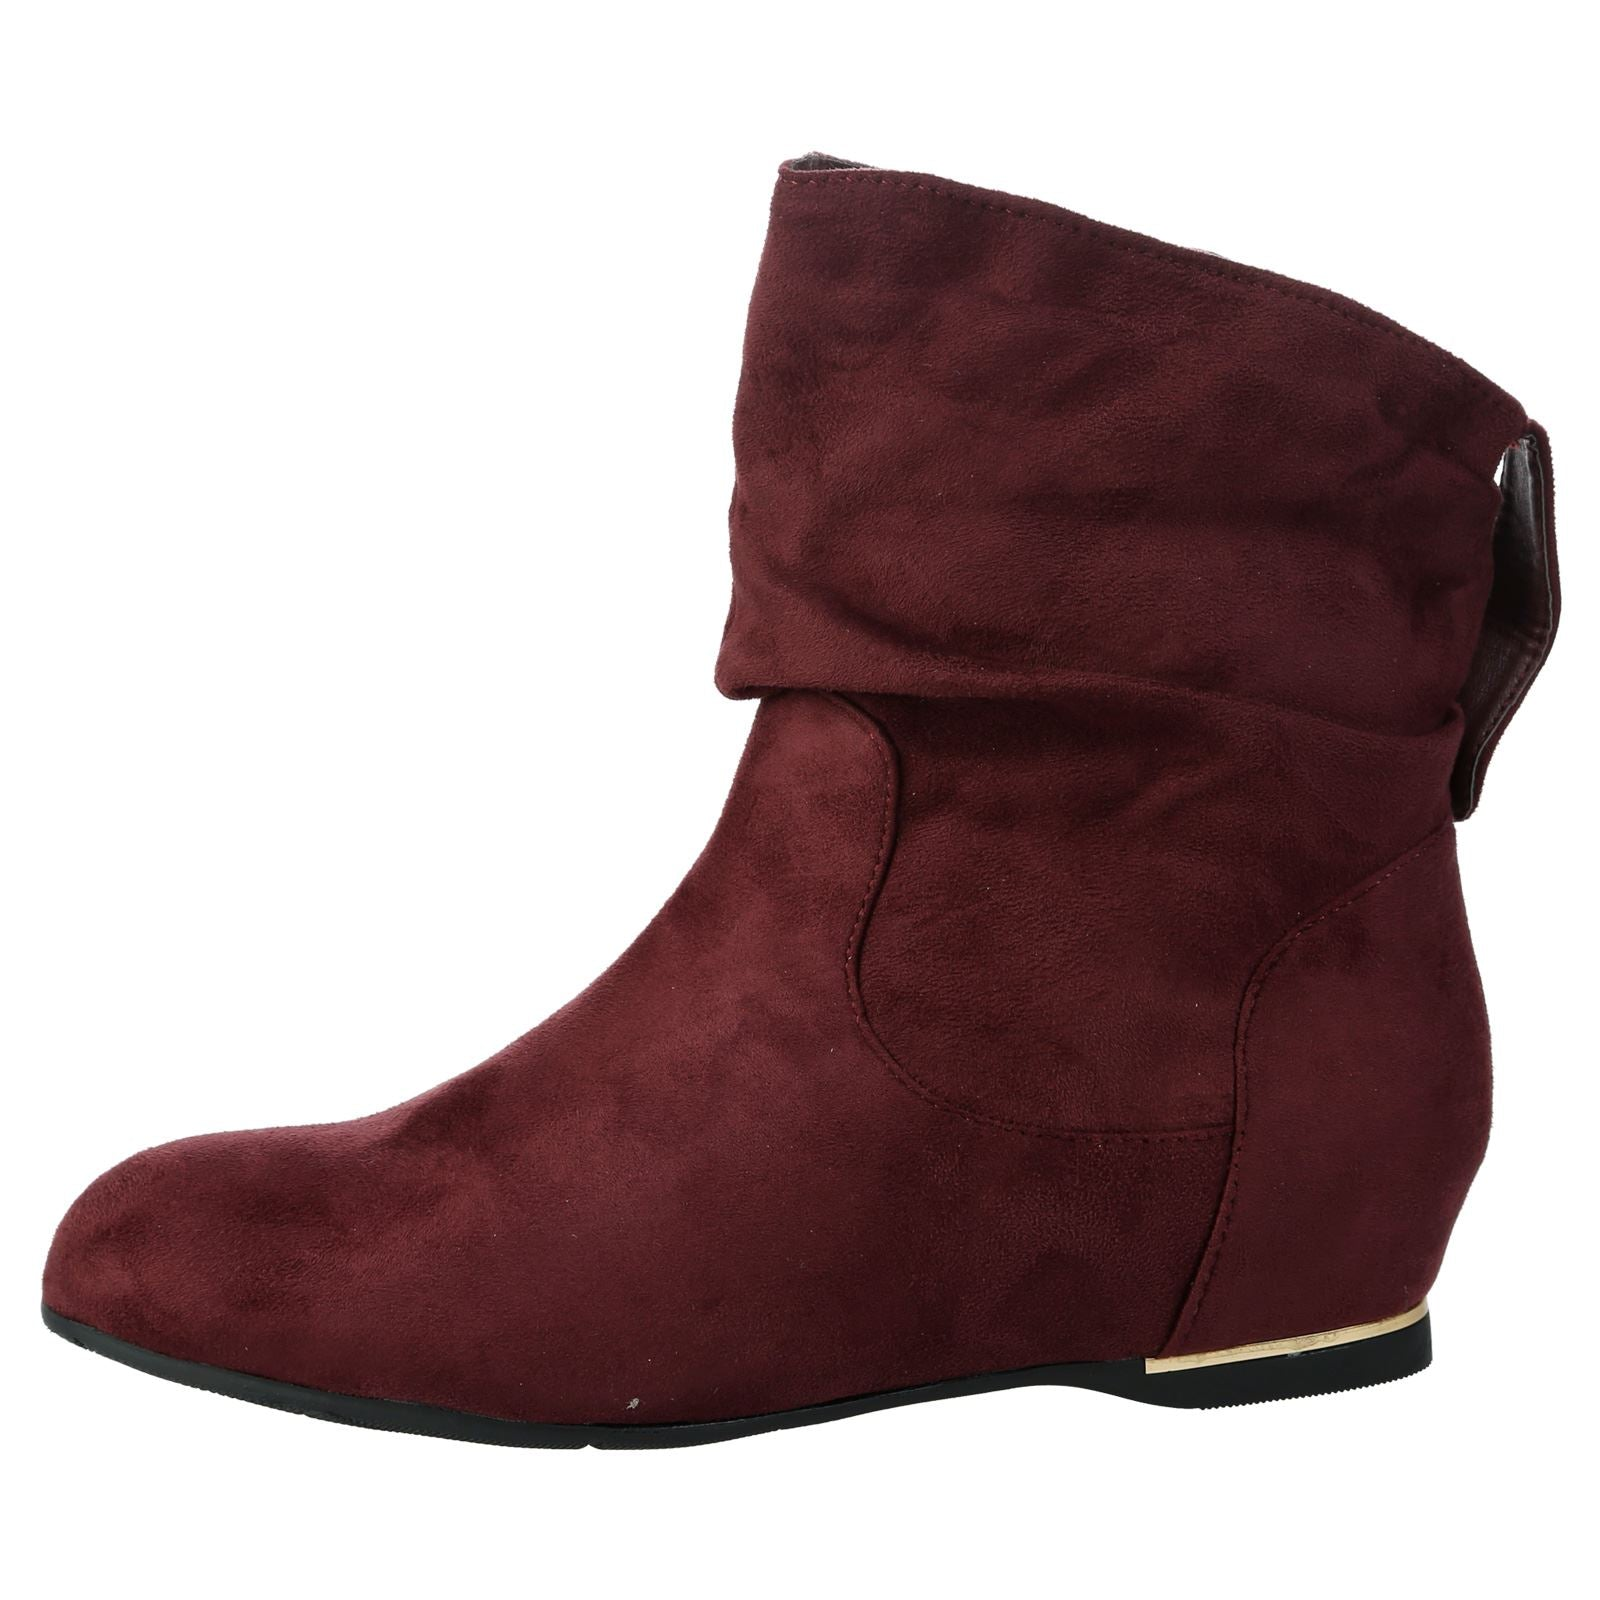 Daphne Hidden Wedge Slouchy Ankle Boots in Wine Red Faux Suede